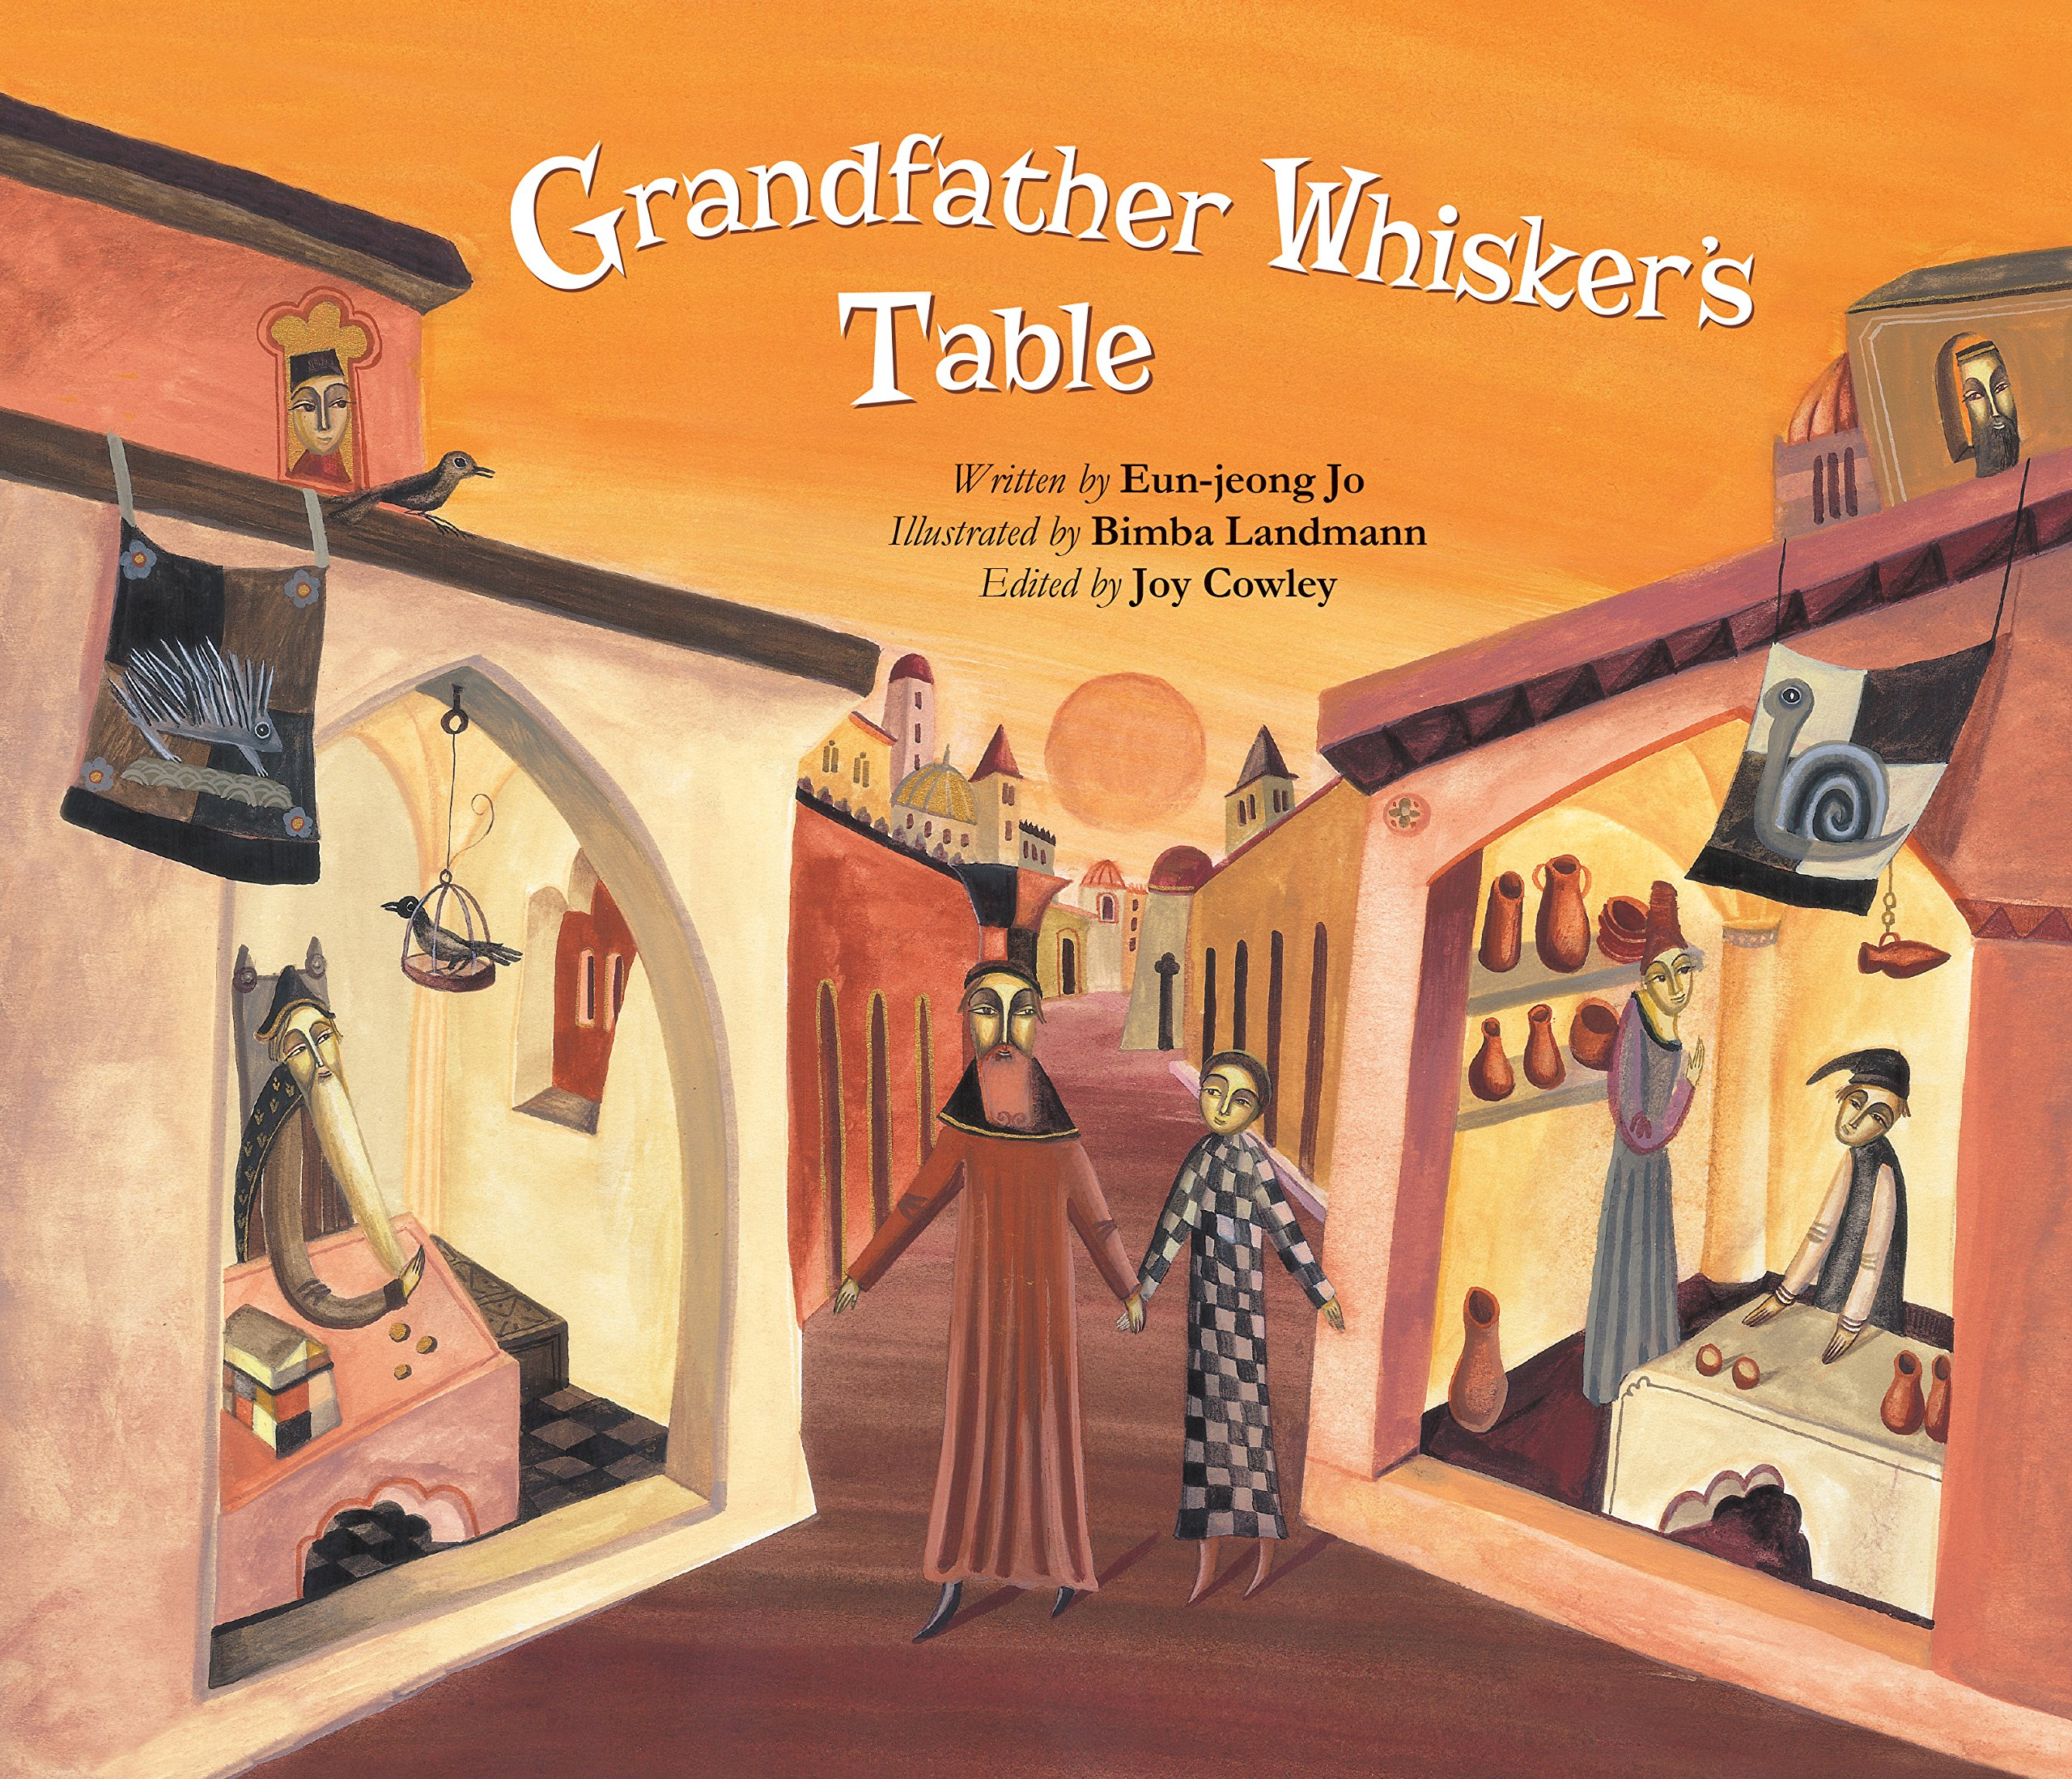 Grandfather Whisker's Table (Trade Winds)